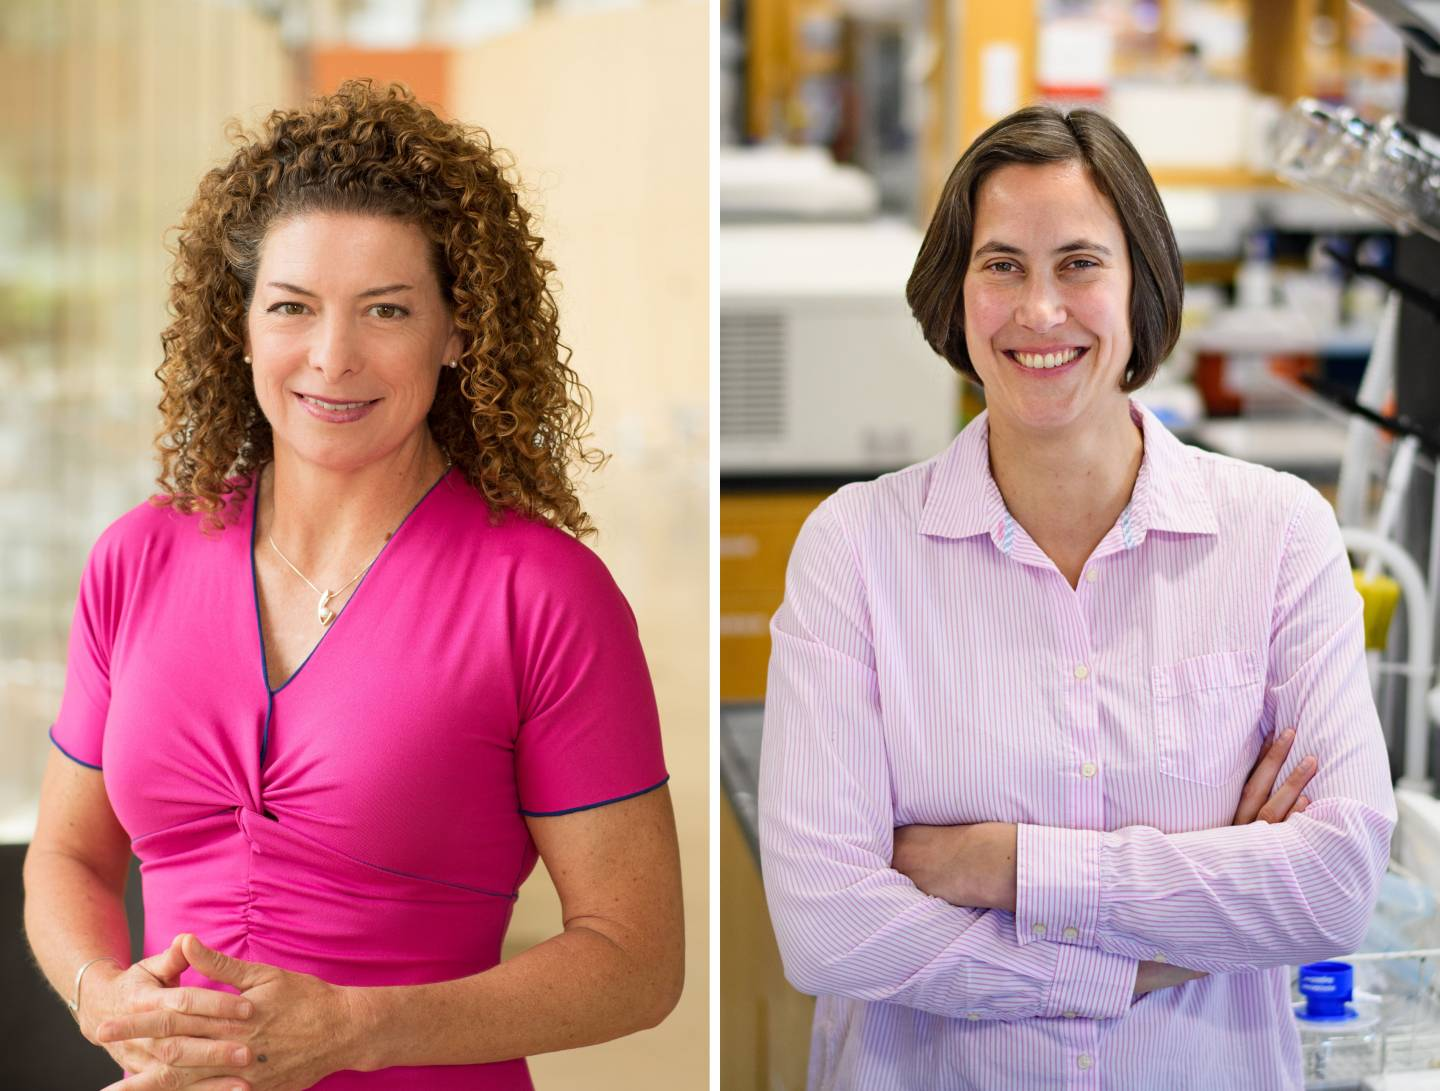 Murphy and Petry win awards for excellence in cell biology